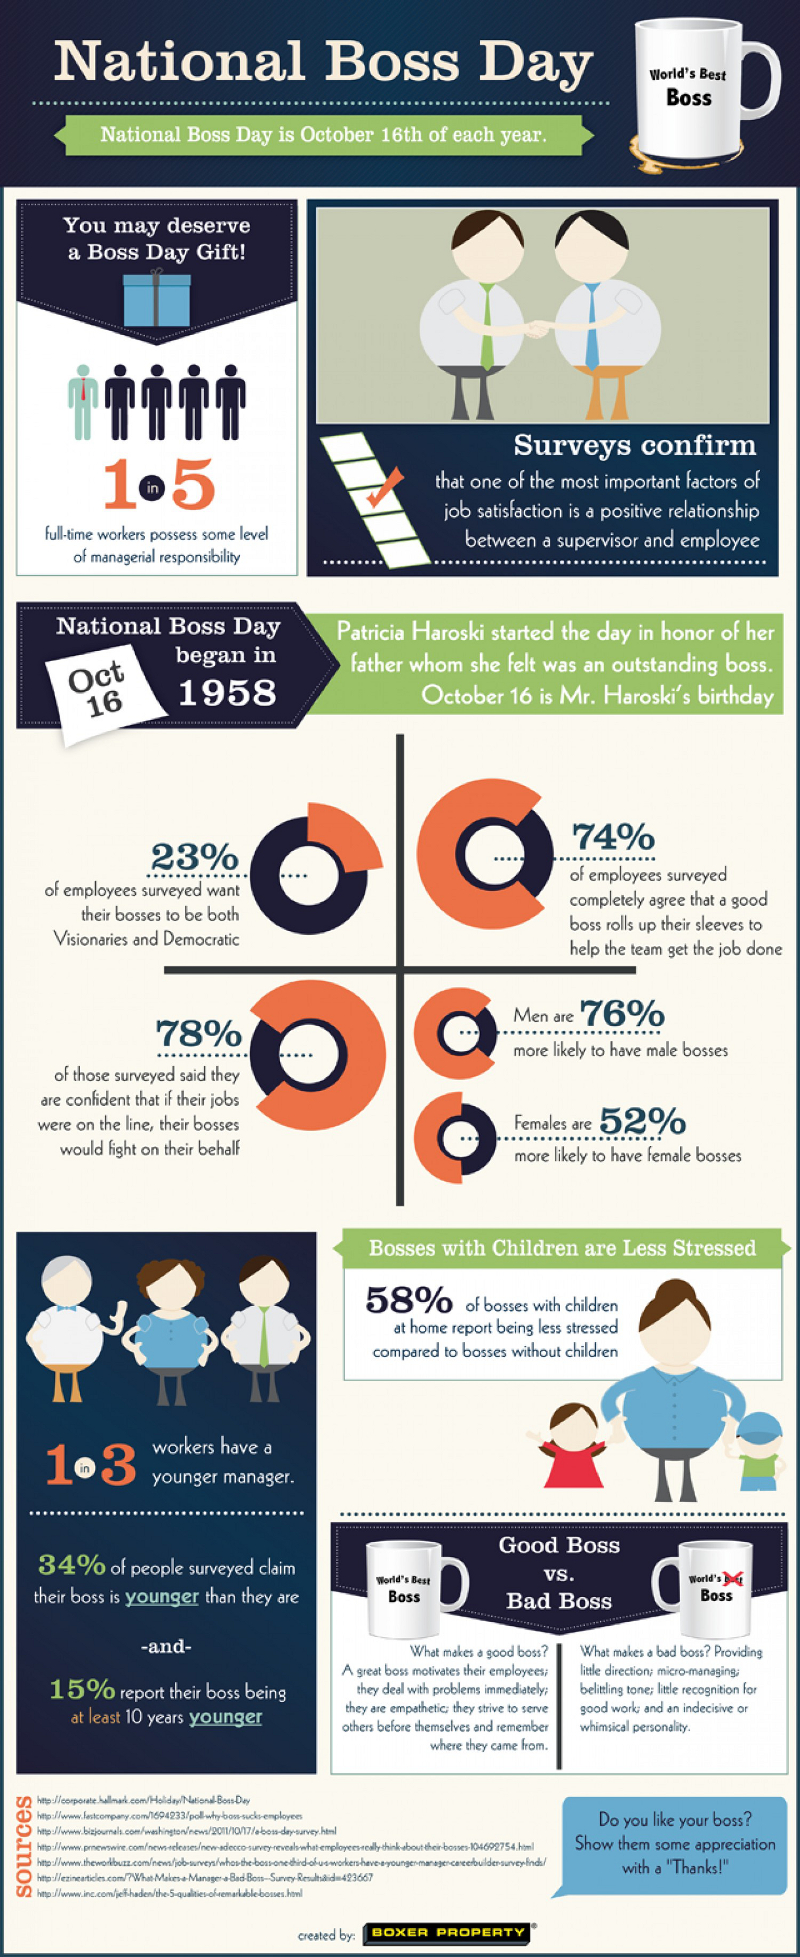 National Boss Day Facts